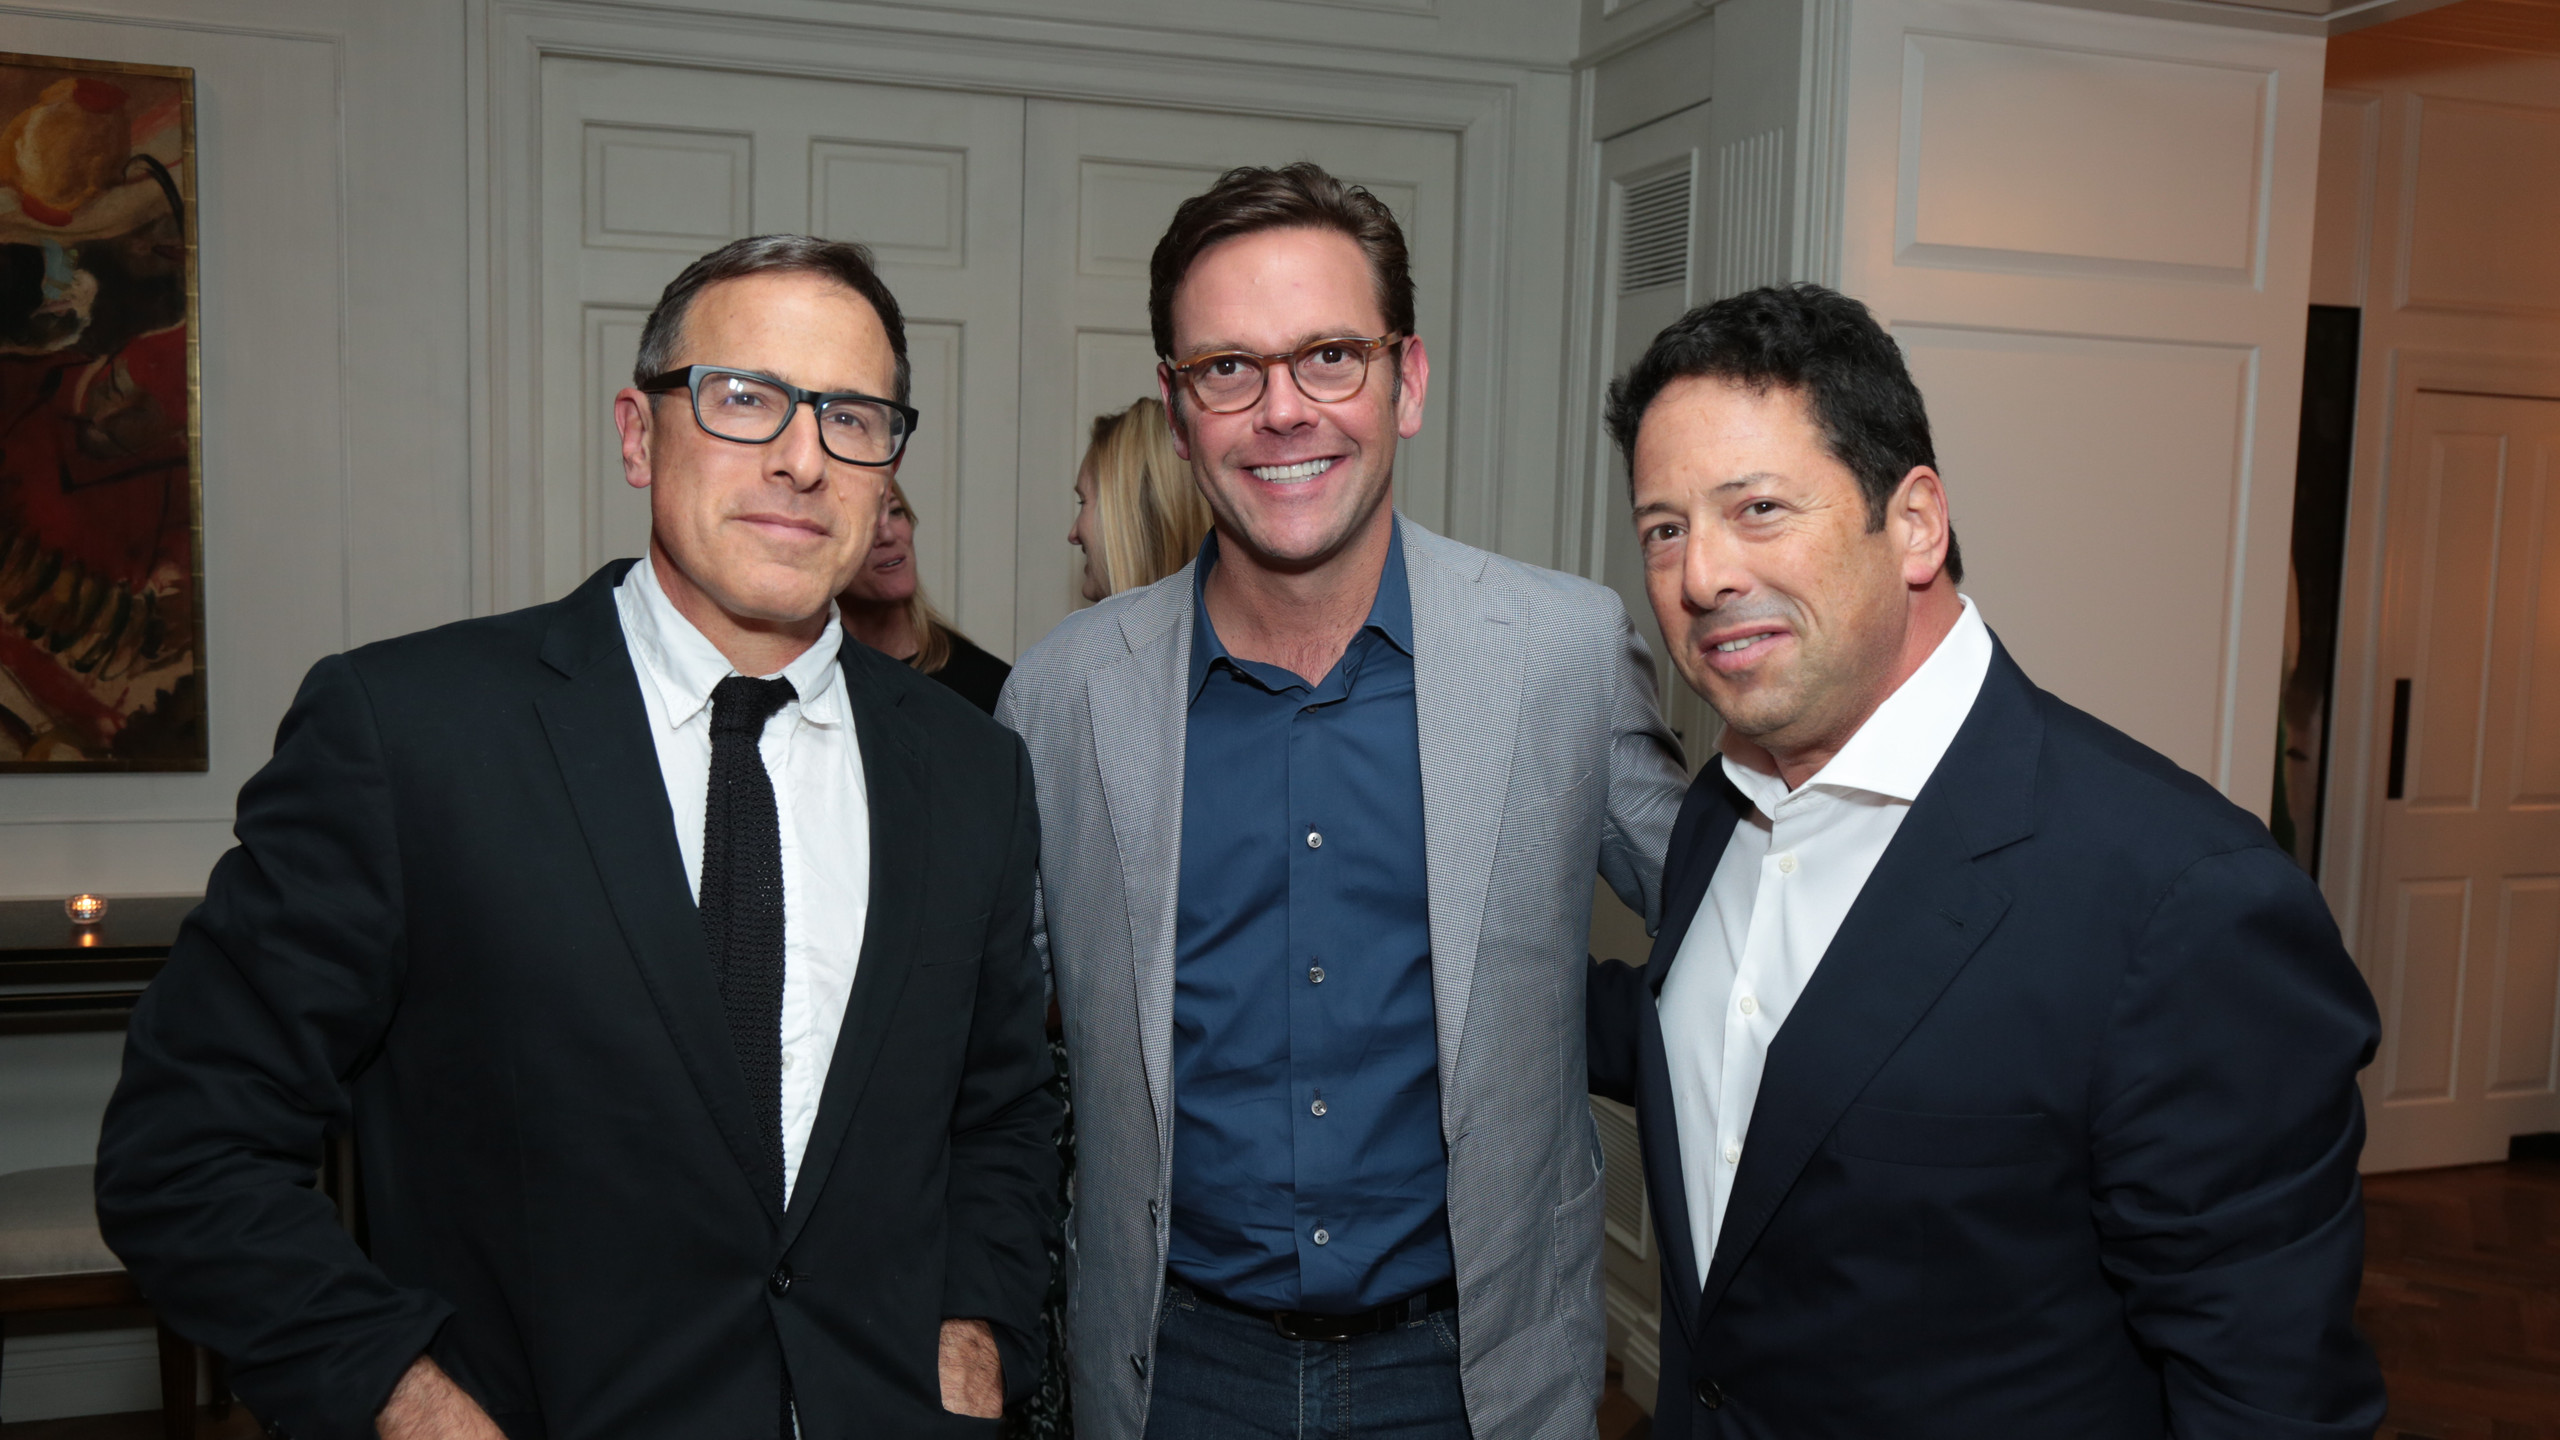 David O. Russell, James Murdoch, Josh Lieberman (Photo: Alex J. Berliner / ABImages )